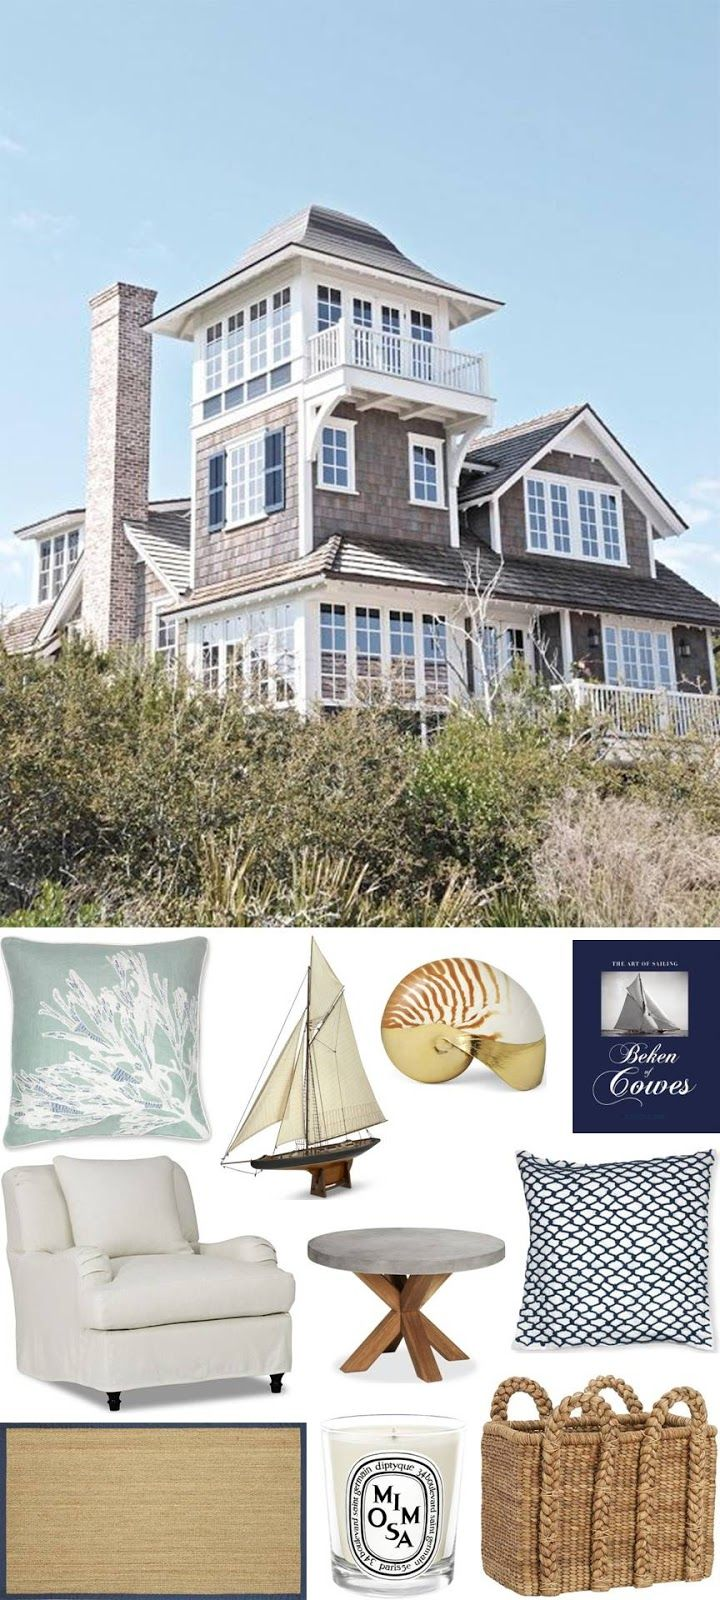 Stunning Seaside Home With Turquoise Accents   wallpaints.info